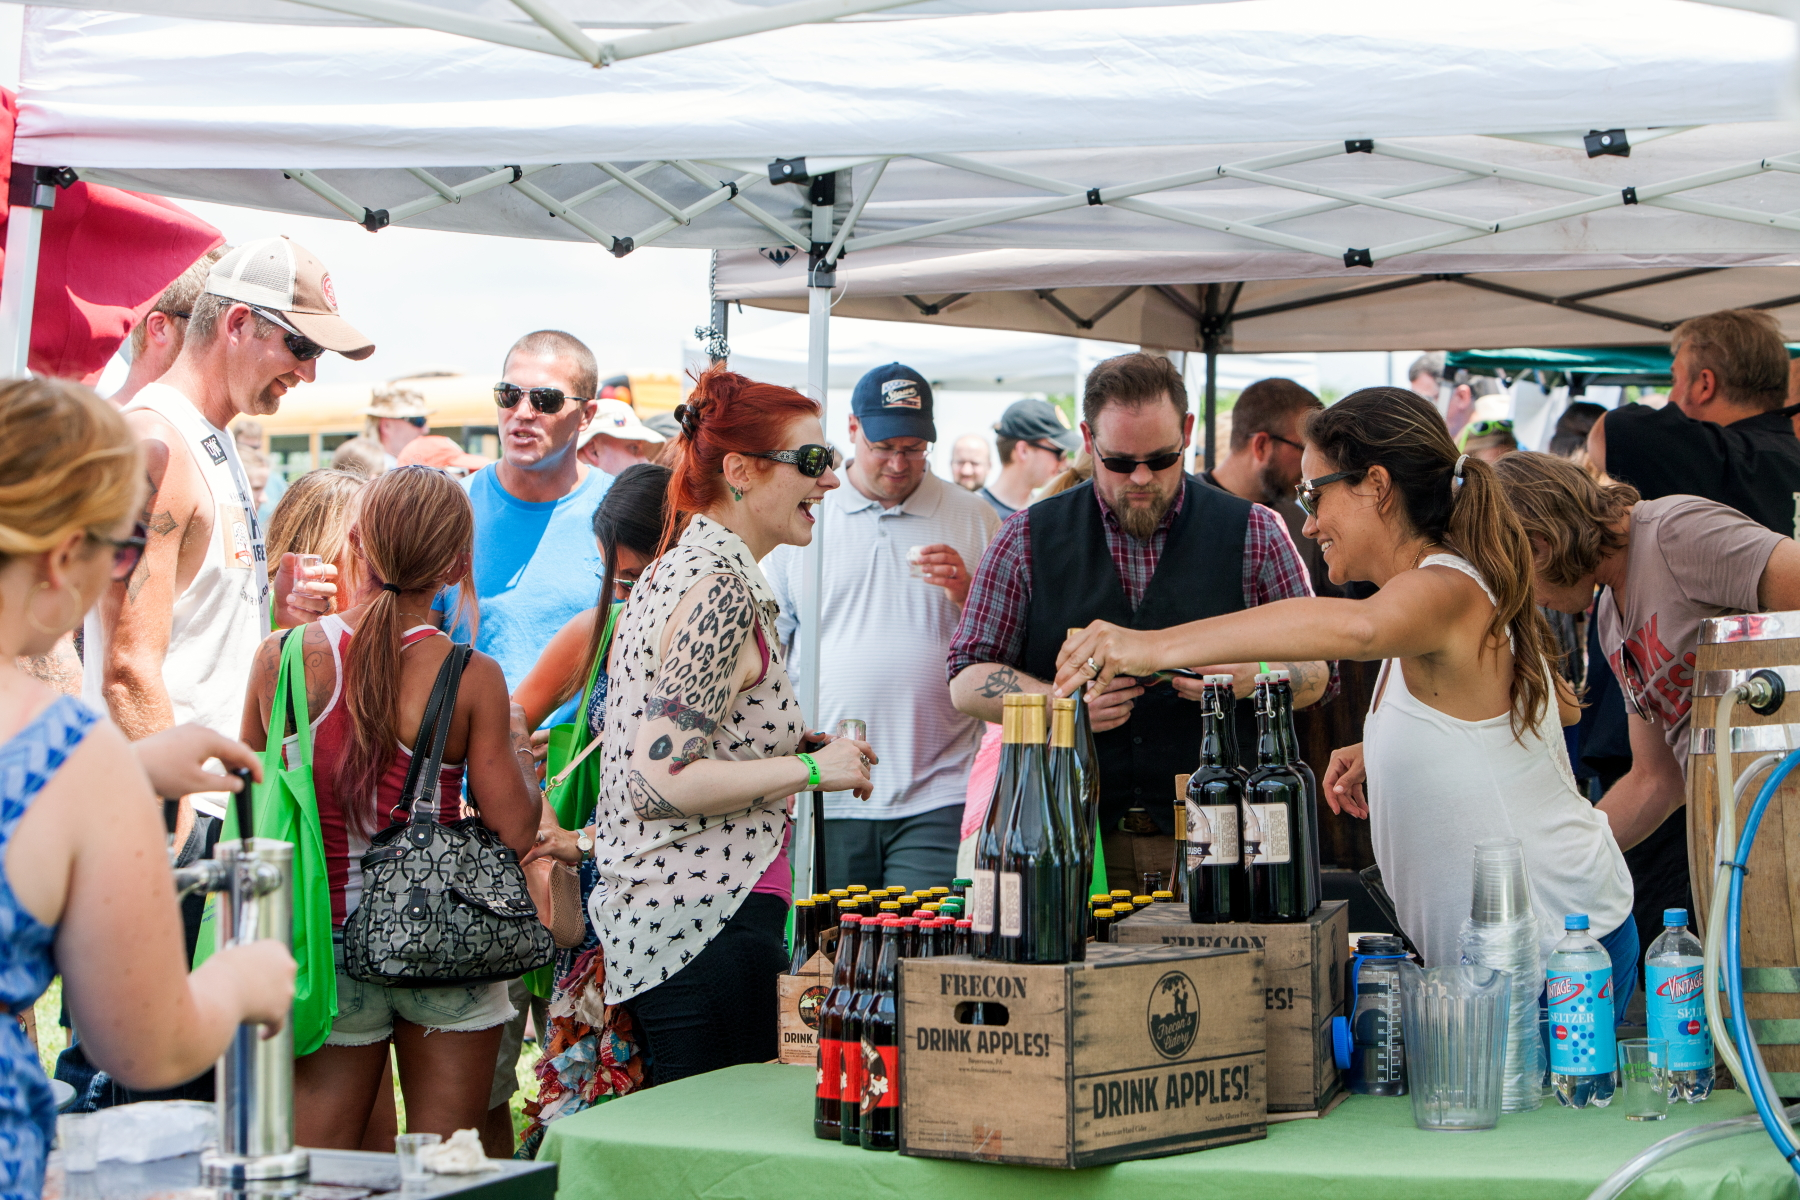 Pennsylvania's Premier Cider-Inspired Event Returns to Gettysburg on Saturday